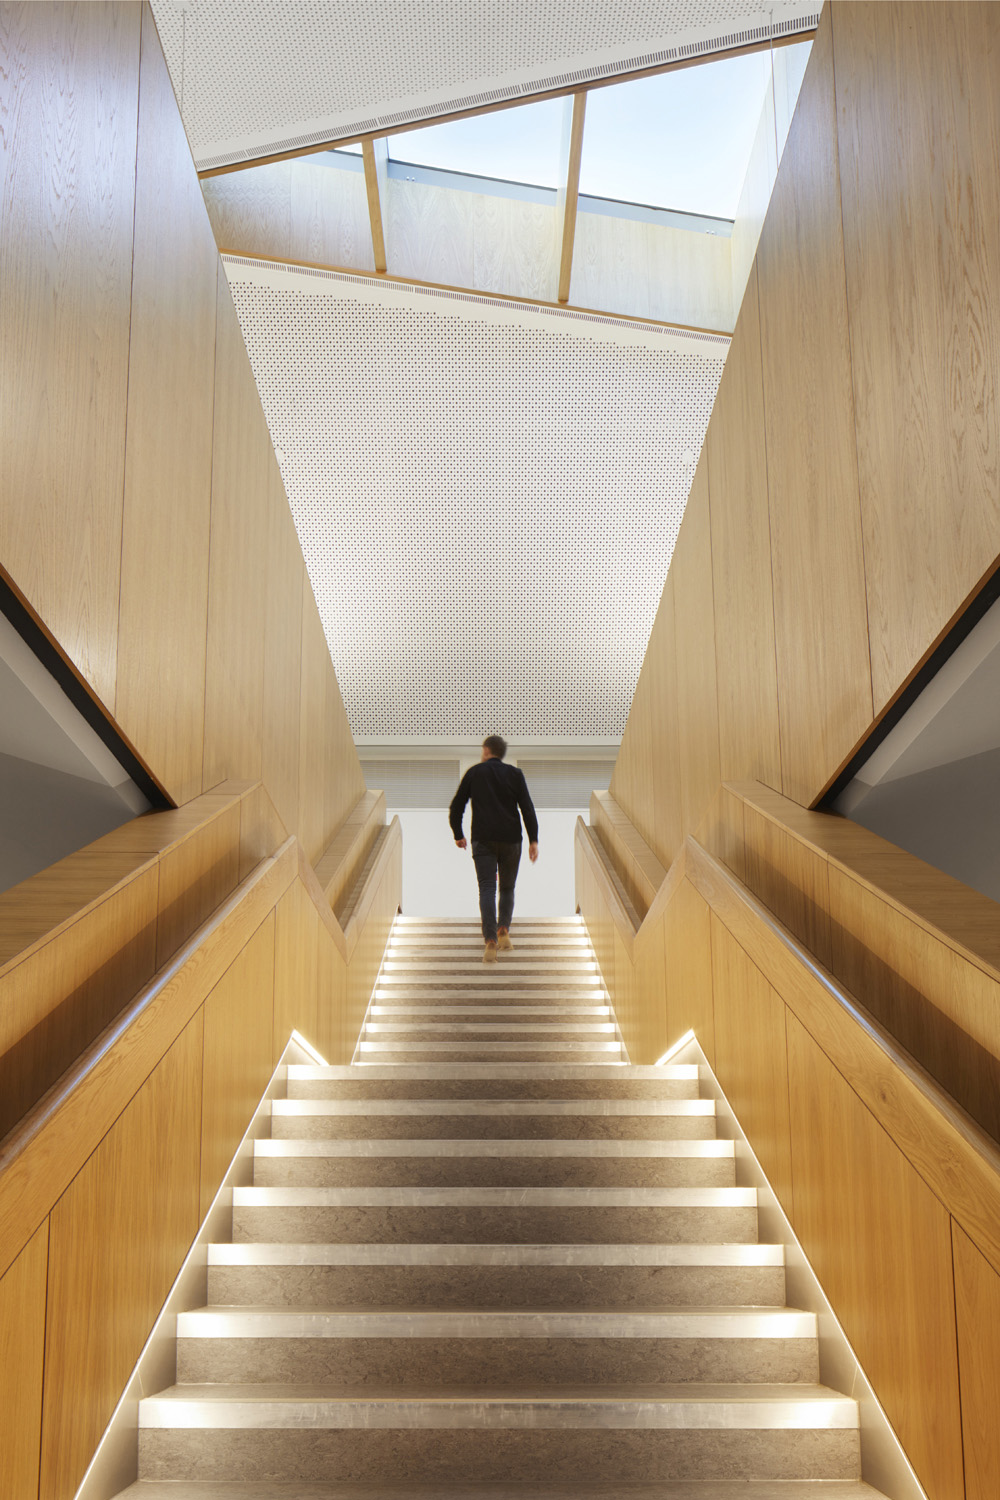 Stairs to top floor 'learning commons' Jack Hobhouse